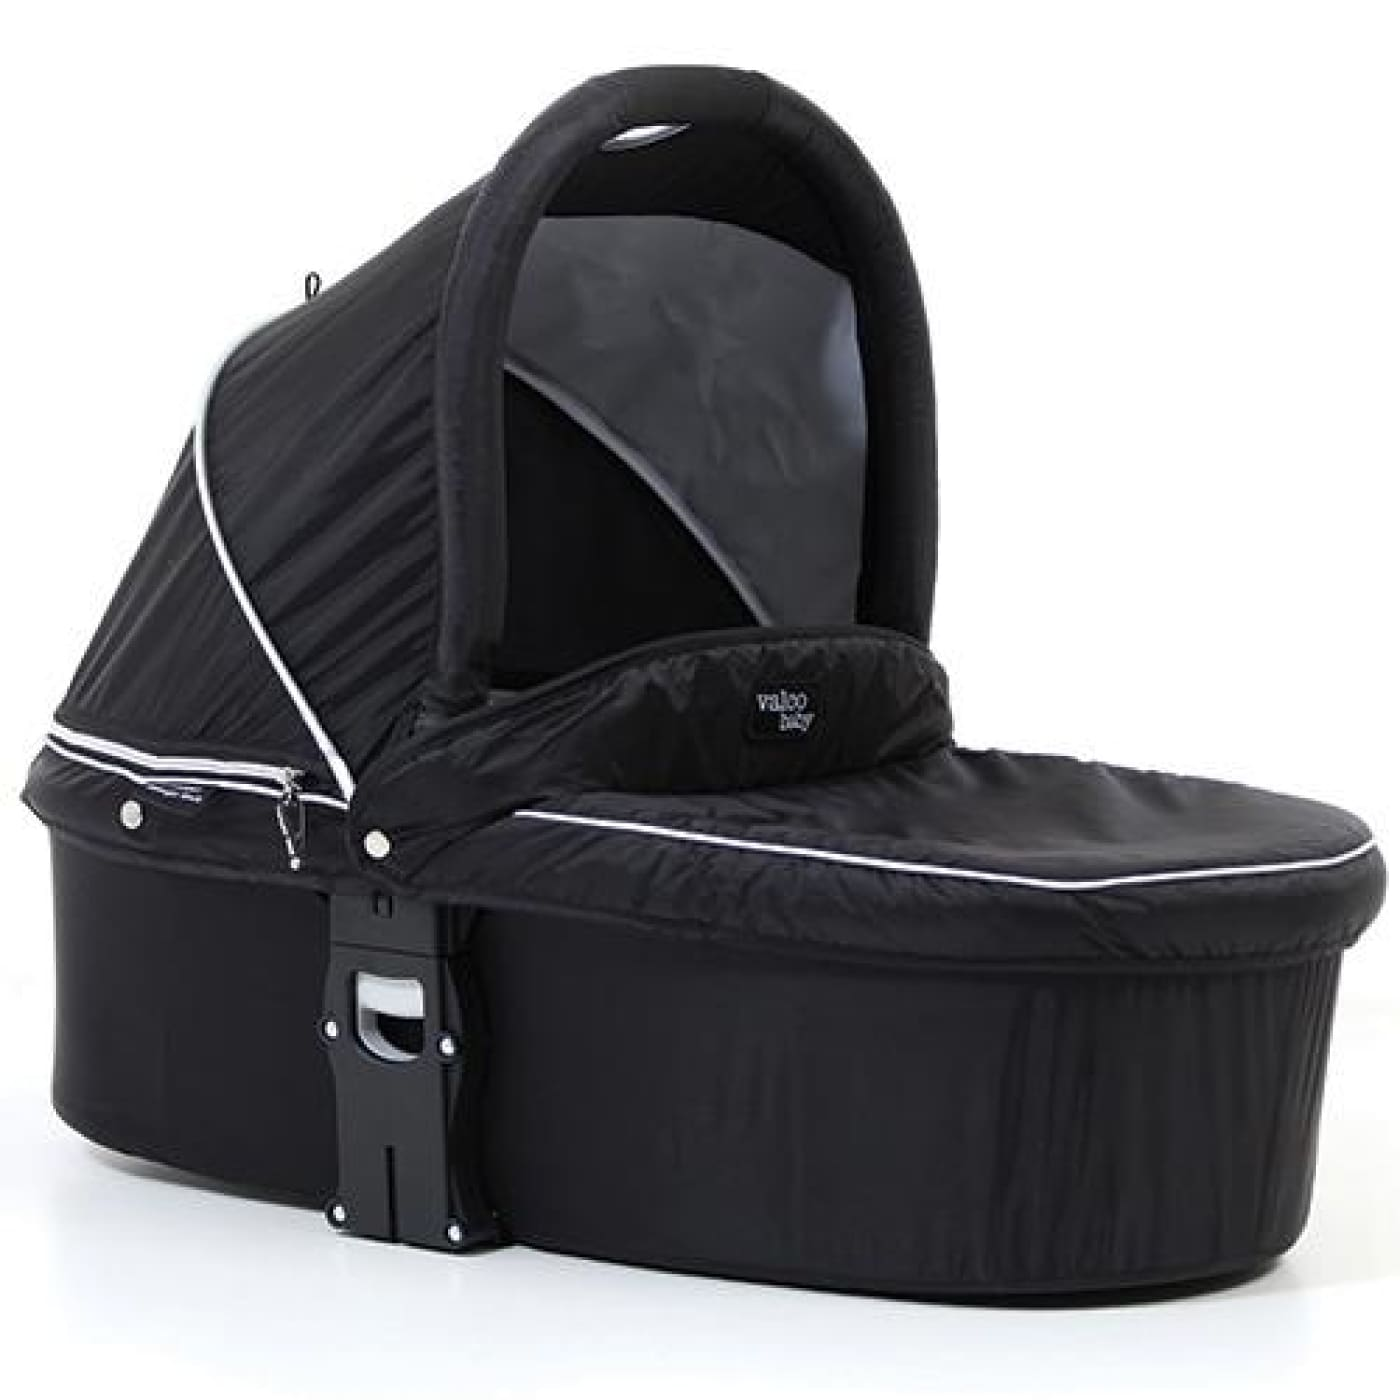 Valco Baby Q Bassinet - Midnight Black - PRAMS & STROLLERS - BASS/CARRY COTS/STANDS